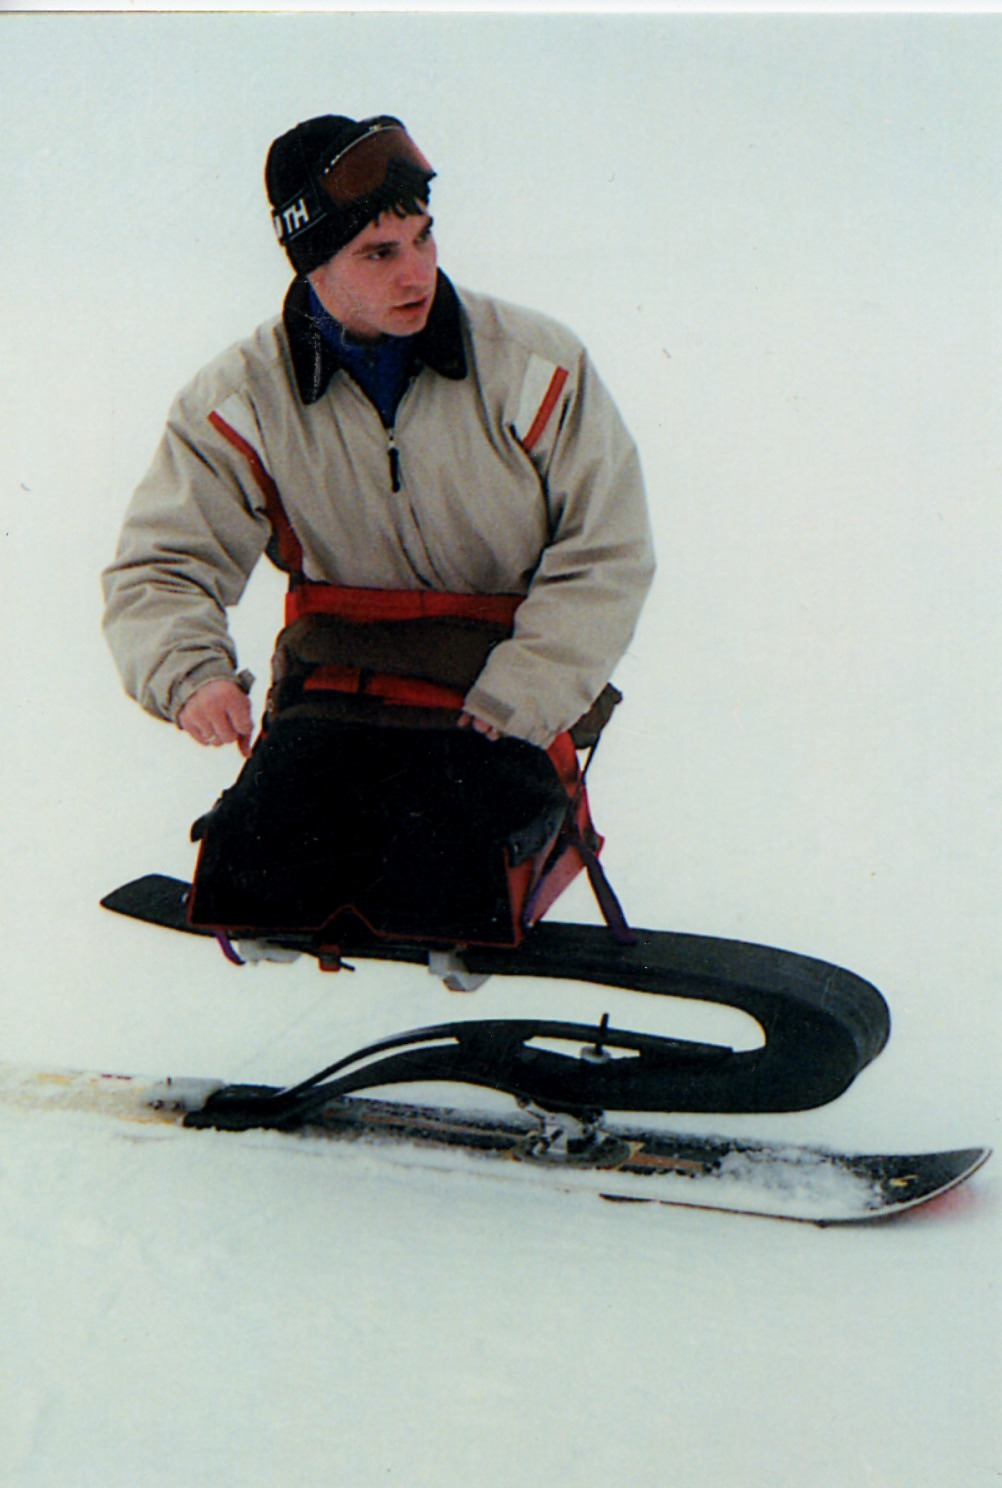 images for Unidentified young man without legs riding an accessible snowboard : color photoprint